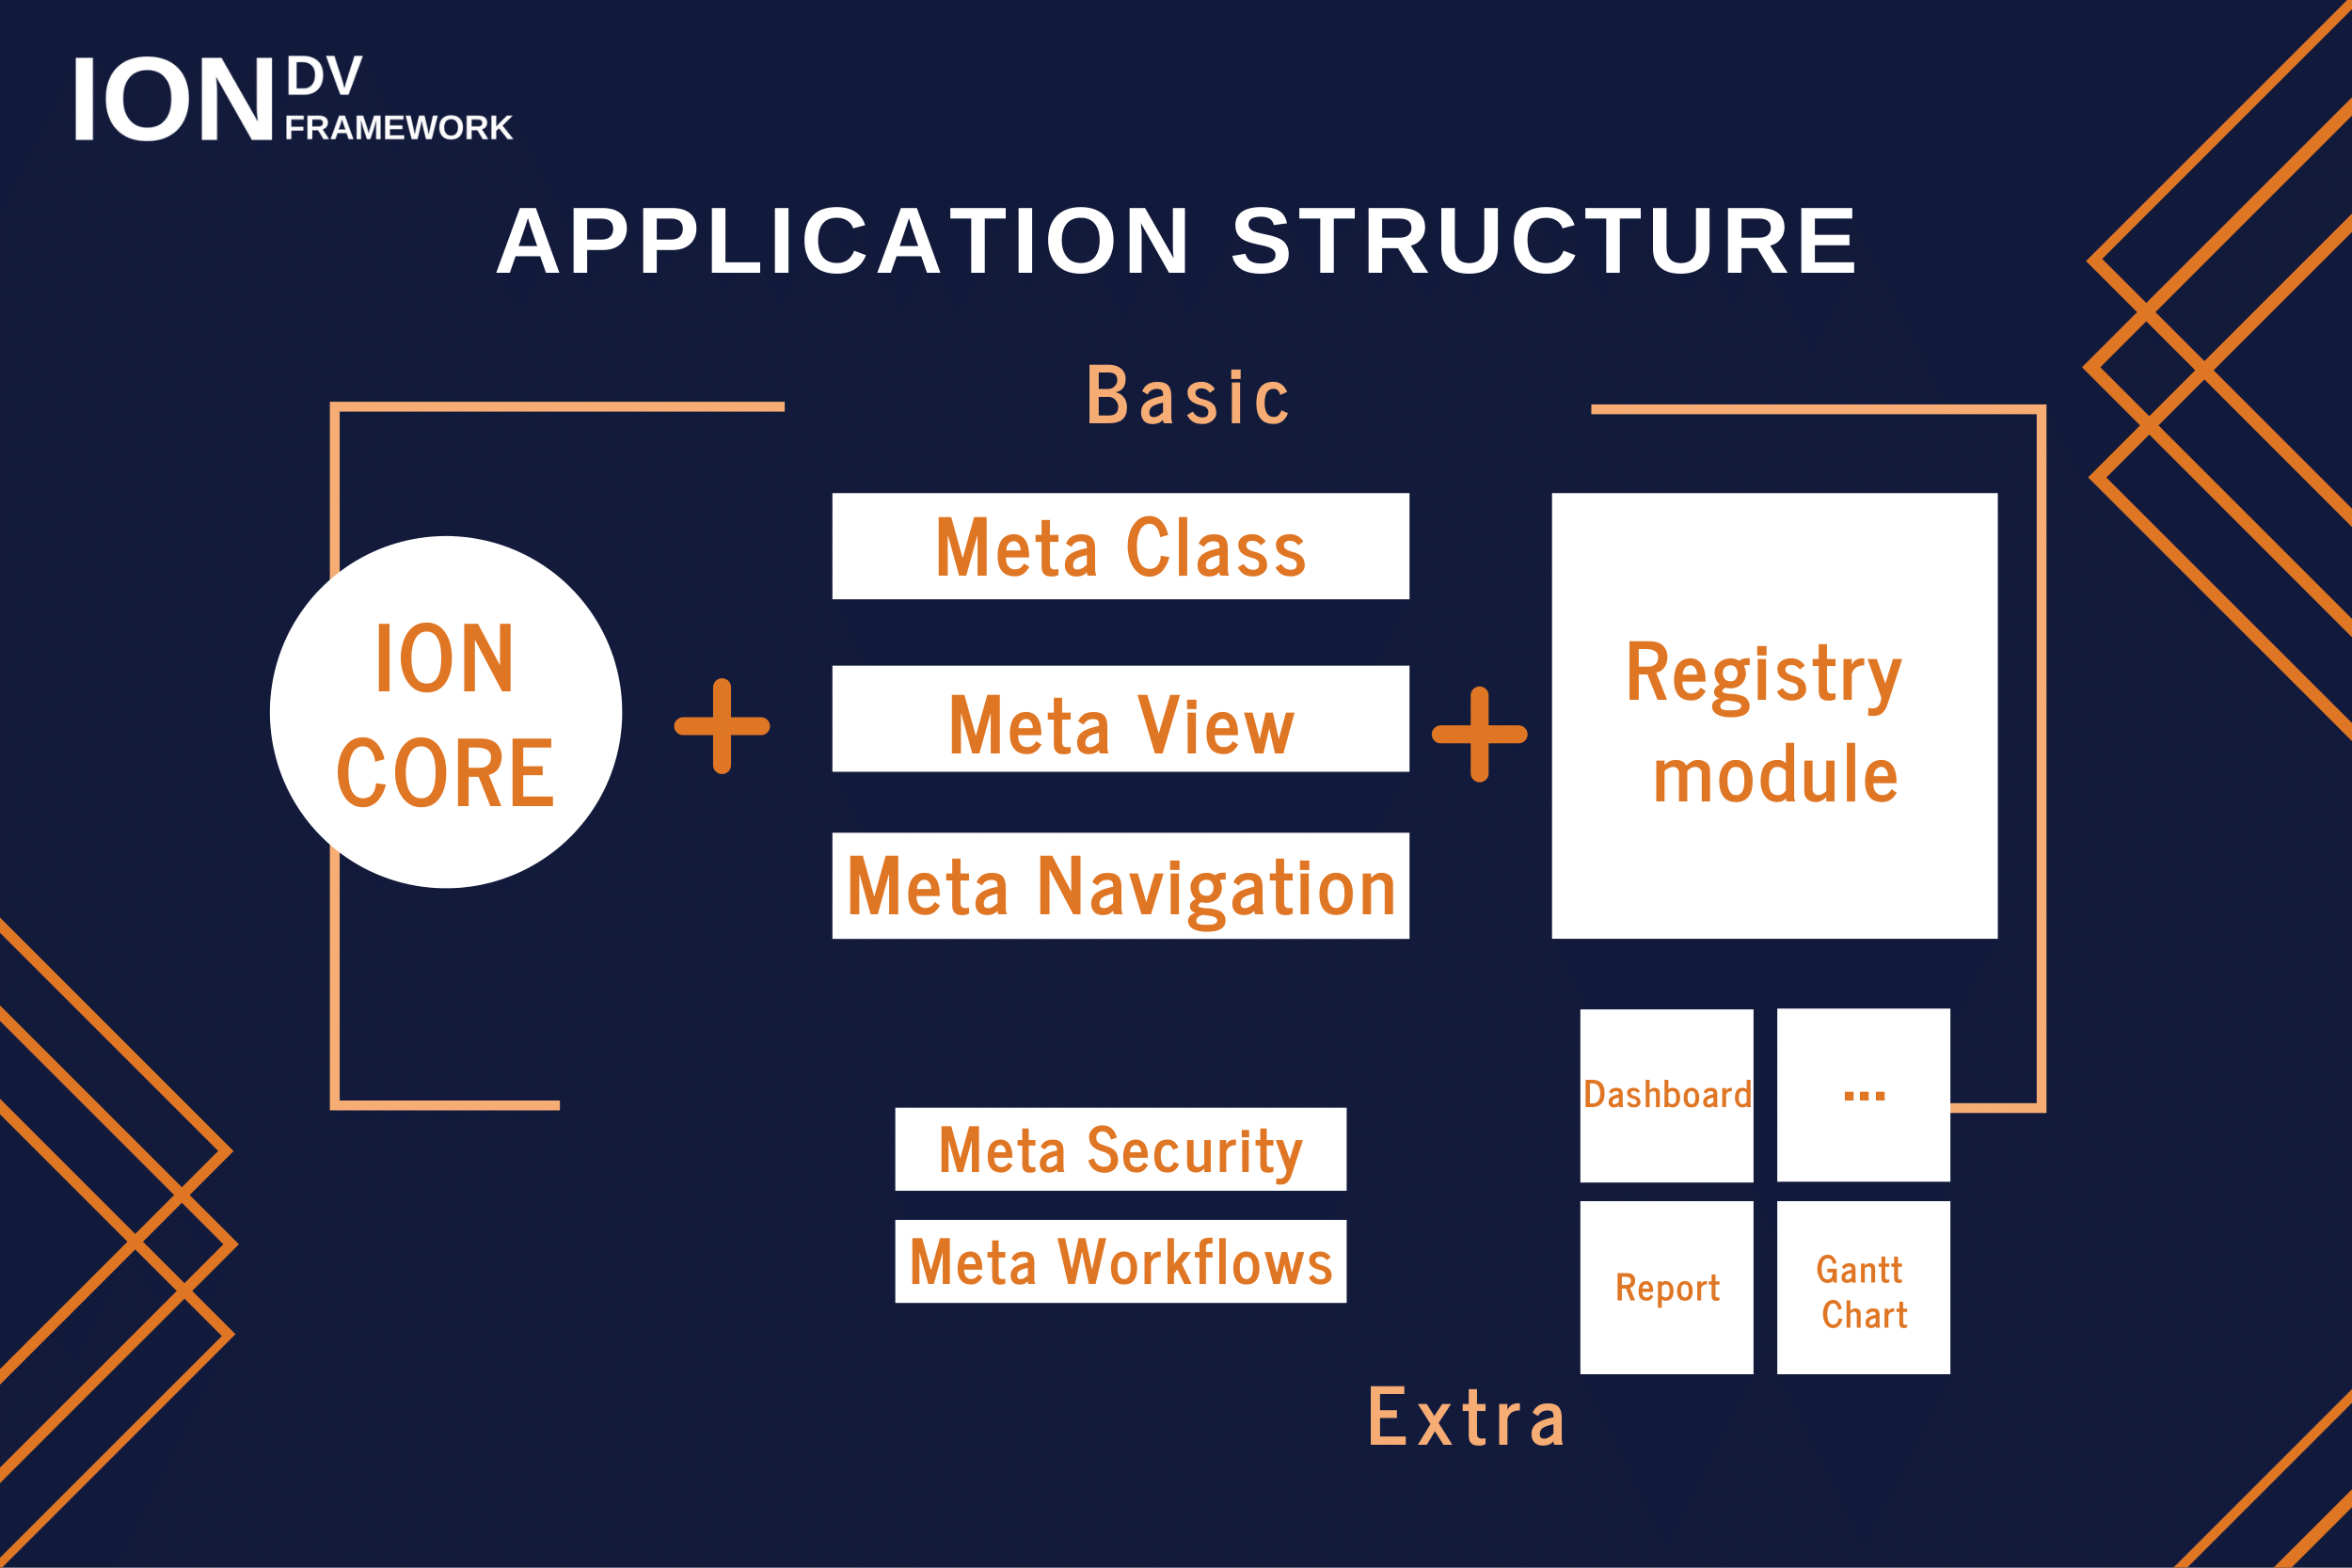 Application structure - core, metadata, modules